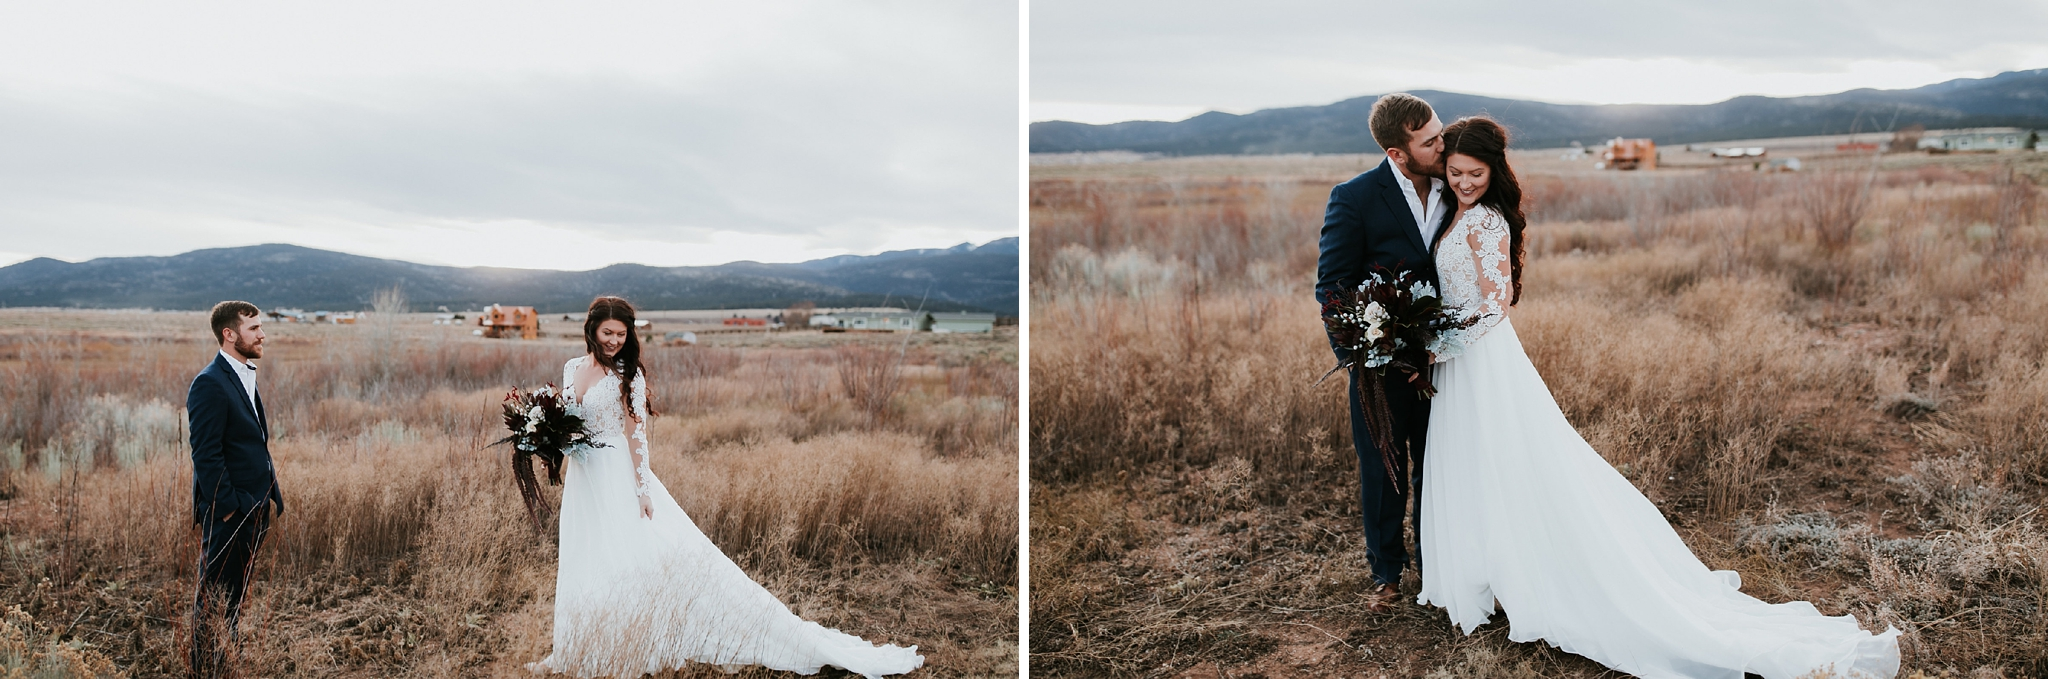 Alicia+lucia+photography+-+albuquerque+wedding+photographer+-+santa+fe+wedding+photography+-+new+mexico+wedding+photographer+-+new+mexico+wedding+-+wedding+gowns+-+bridal+gowns+-+a+line+wedding+gown_0010.jpg